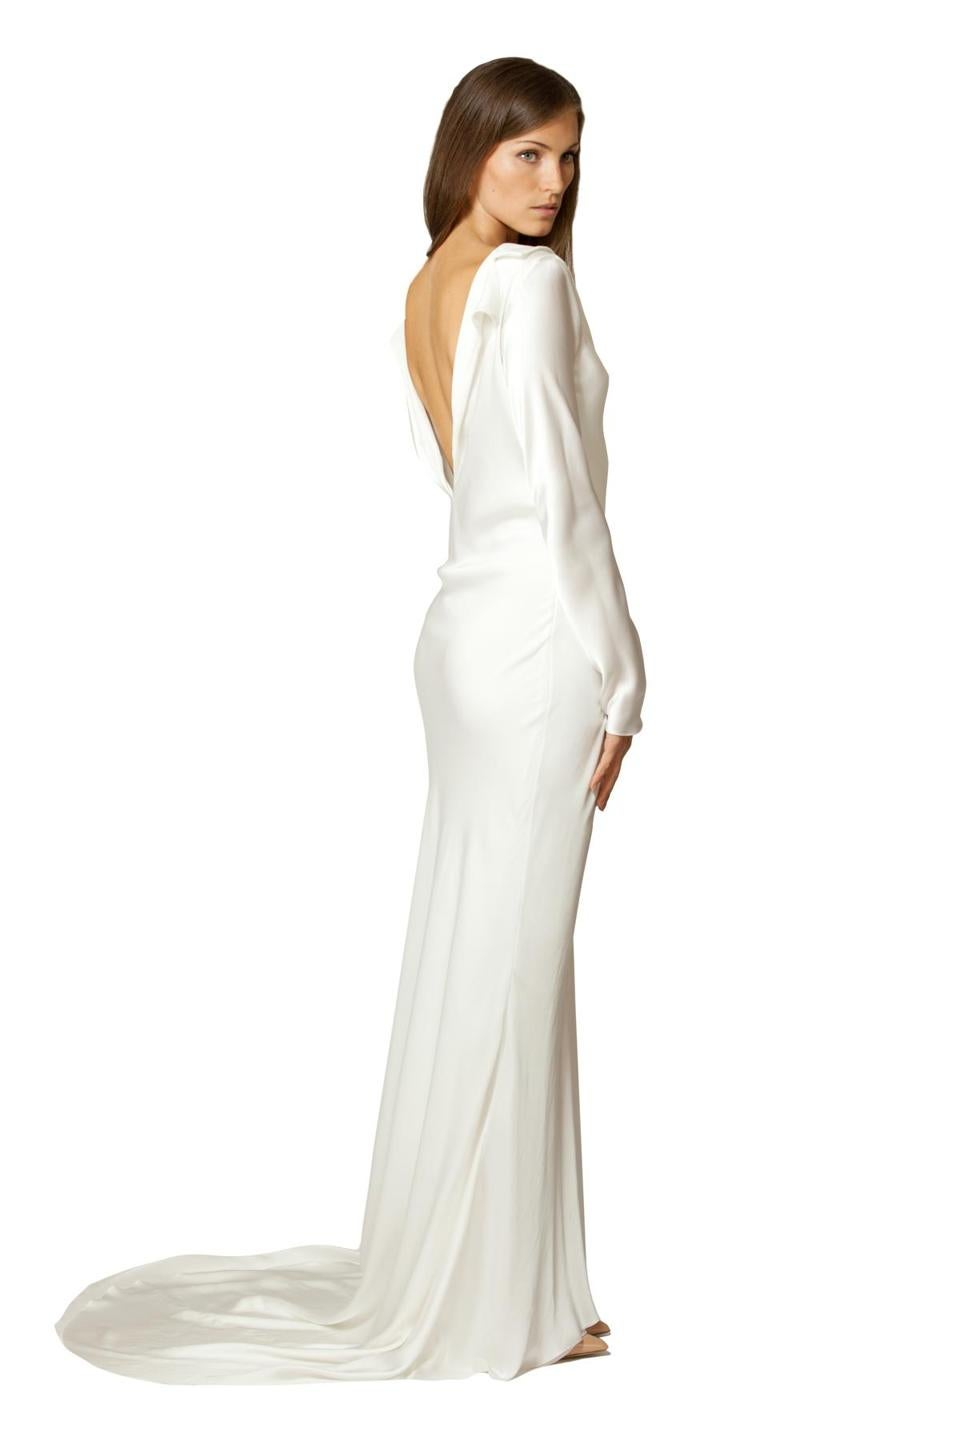 10 wedding gown trends (minus the pouf) for 2017 - The Boston Globe